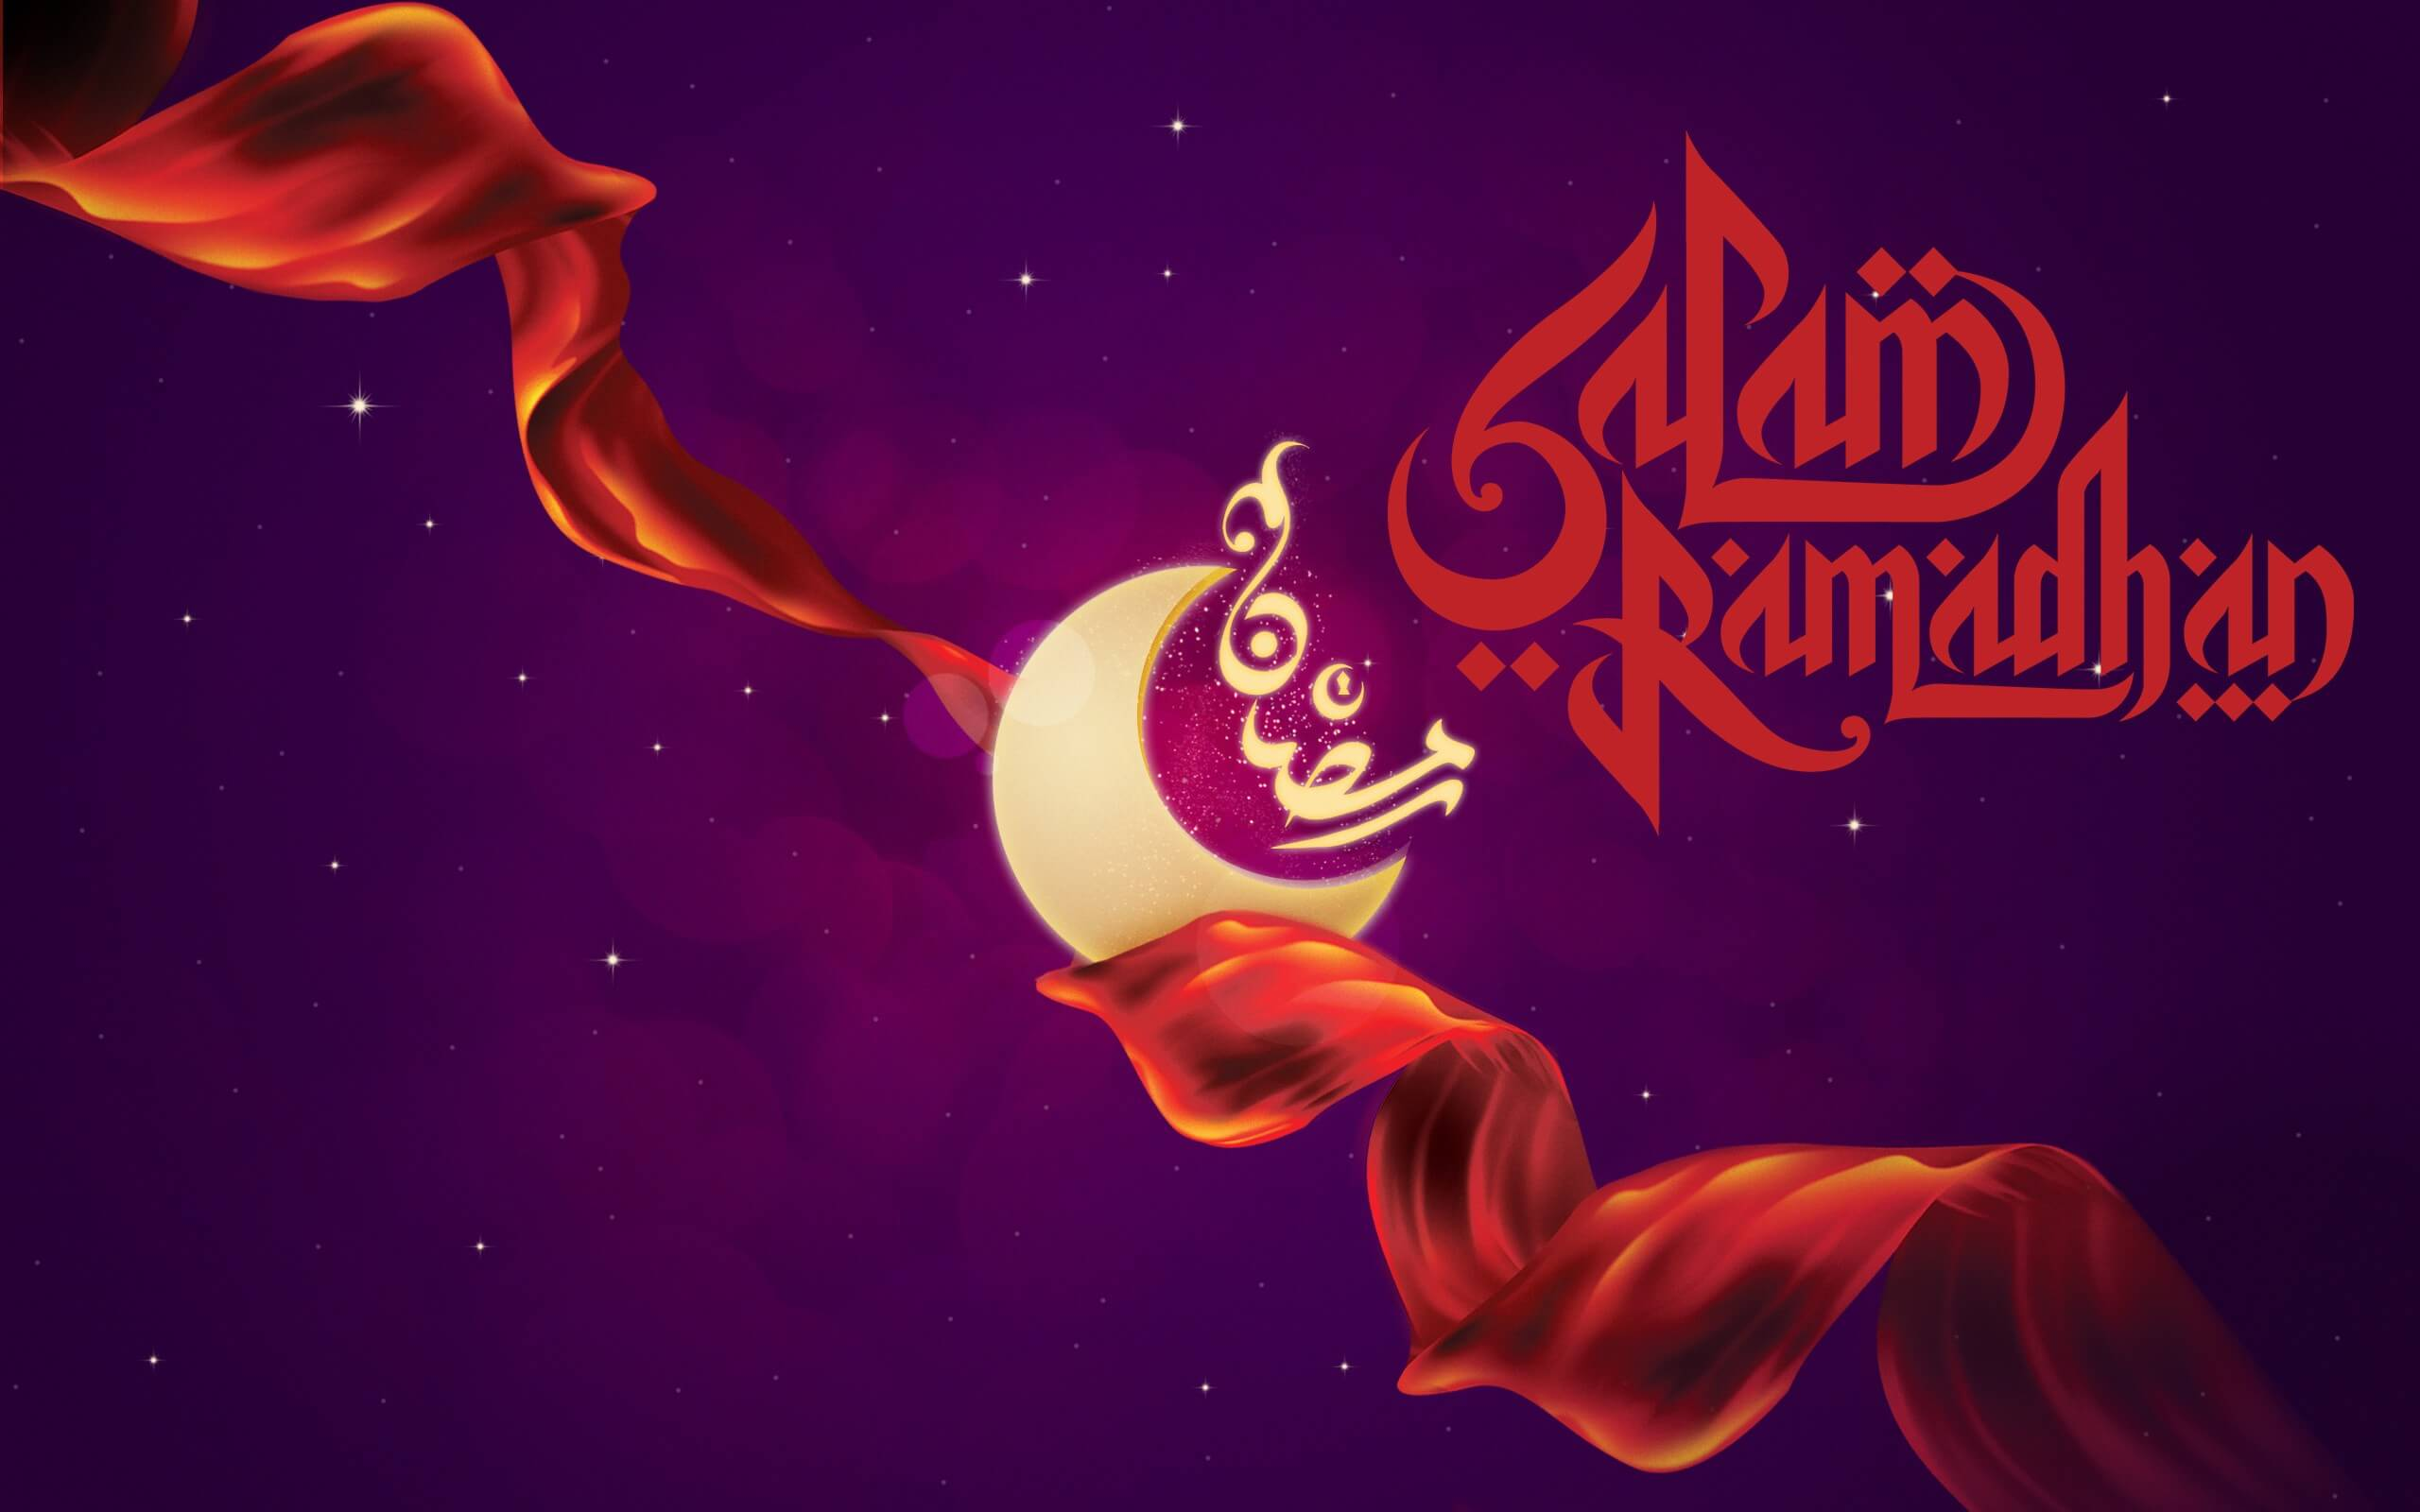 Hd wallpaper ramzan mubarak - Hd Wallpaper Ramzan Mubarak 18